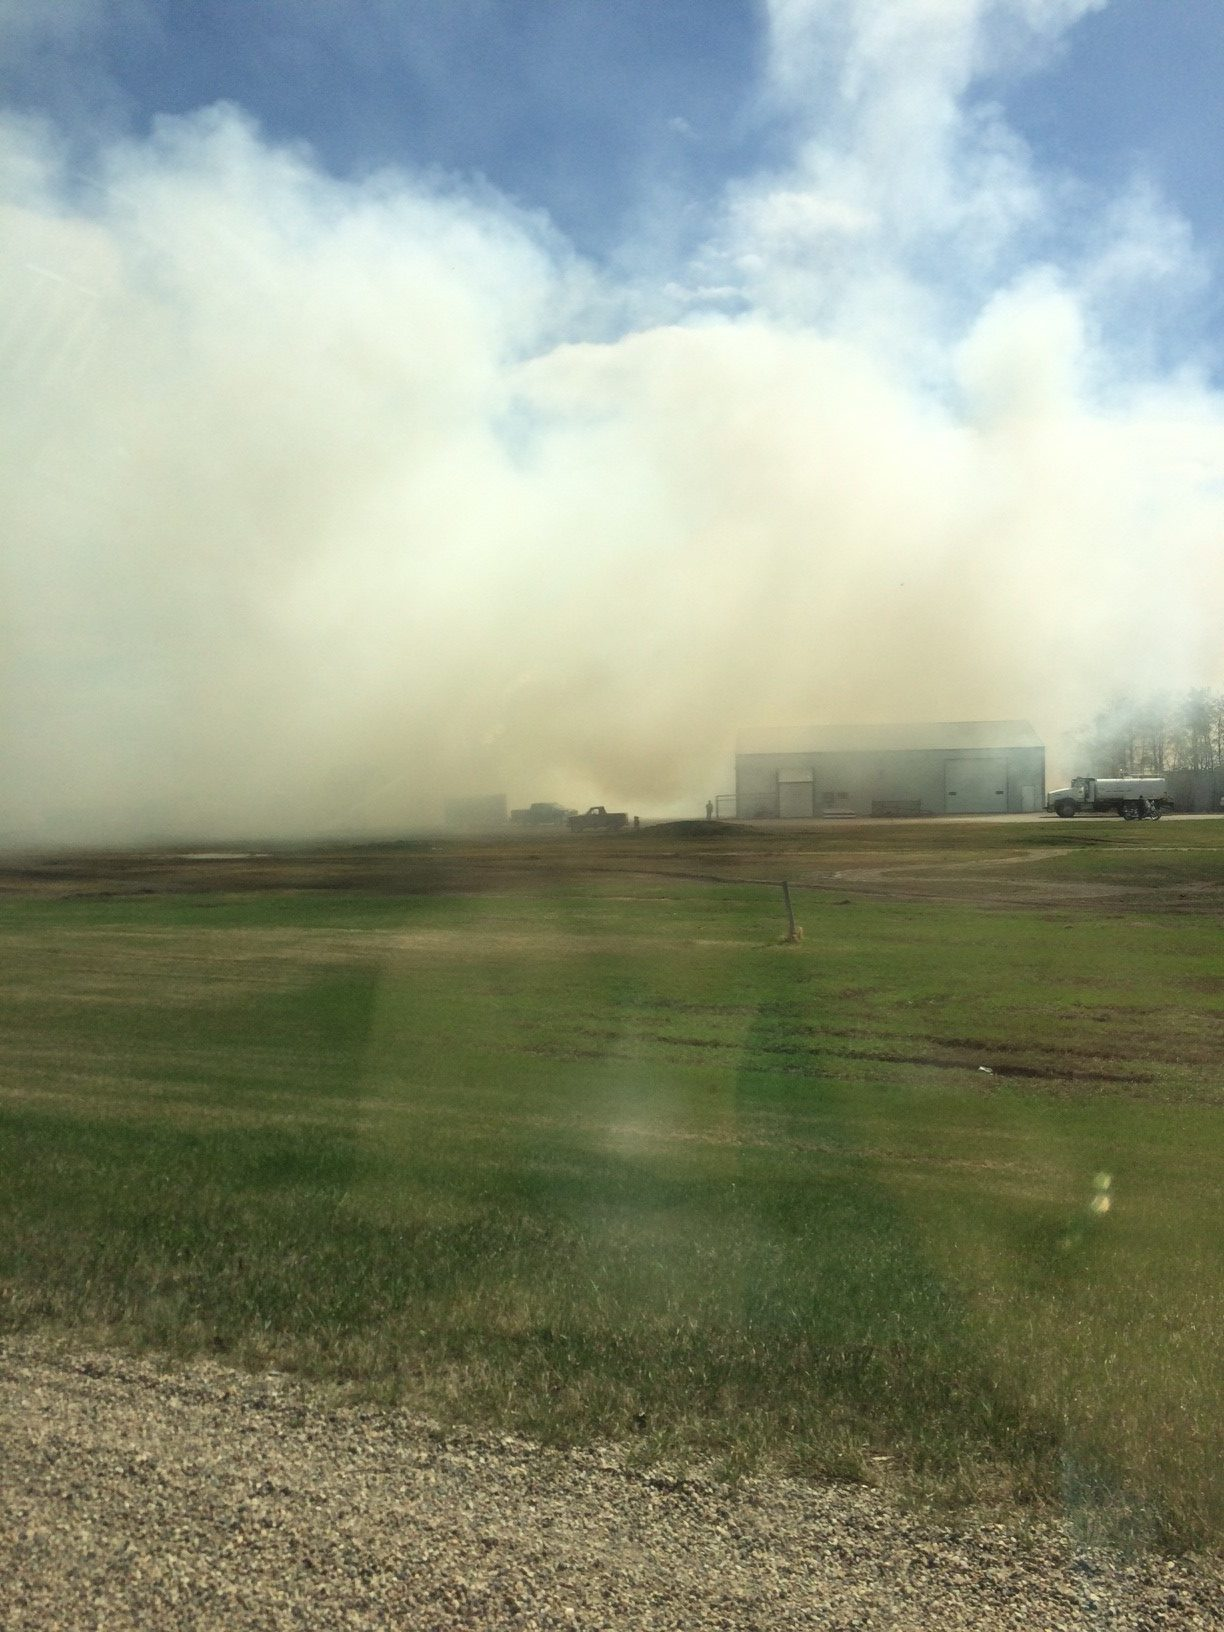 Agriculture minister David Marit expresses concern about wildfires